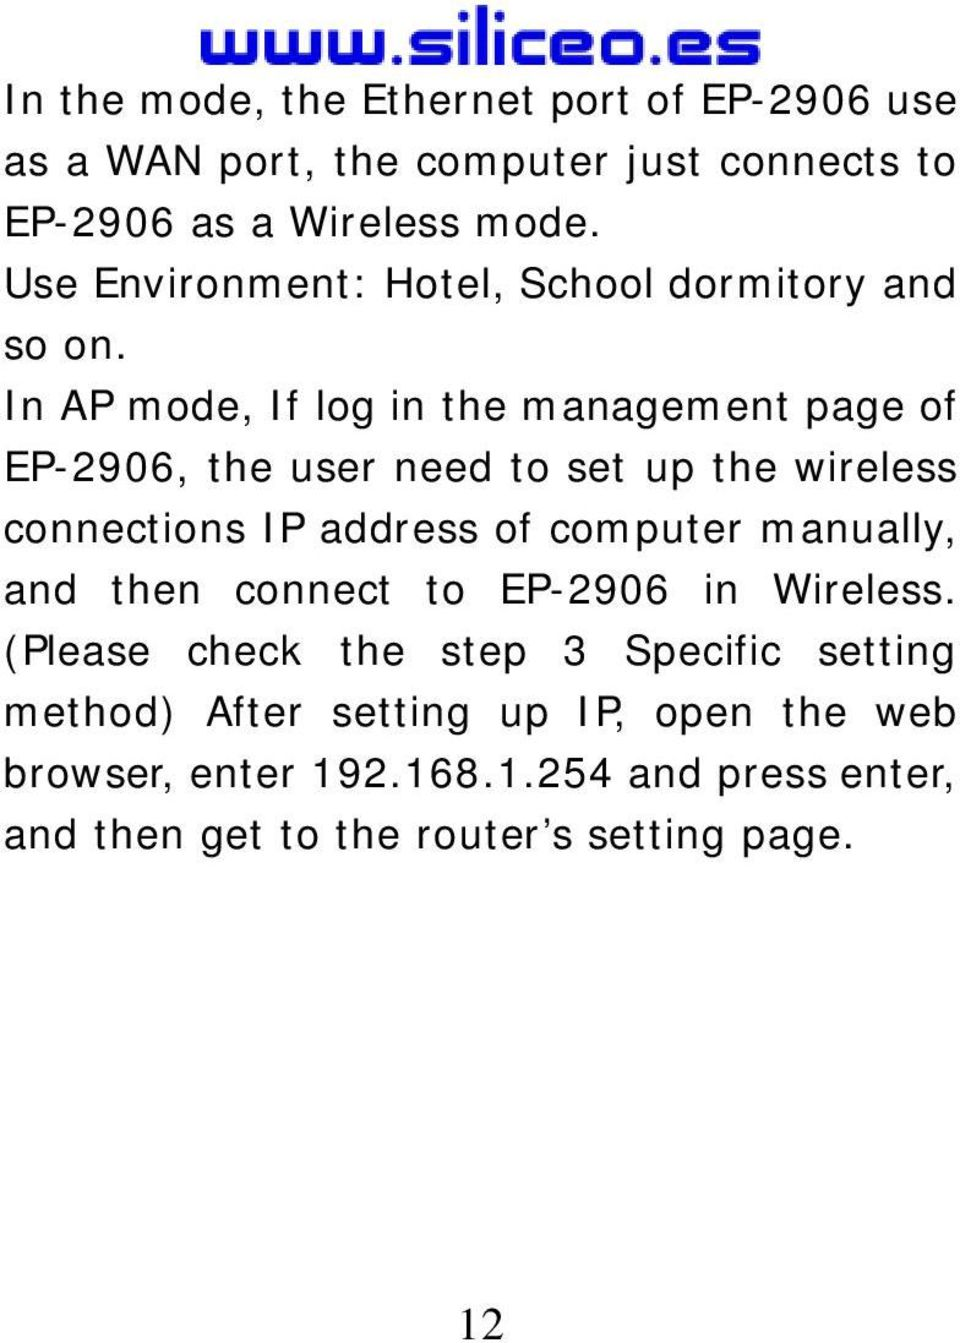 In AP mode, If log in the management page of EP-2906, the user need to set up the wireless connections IP address of computer